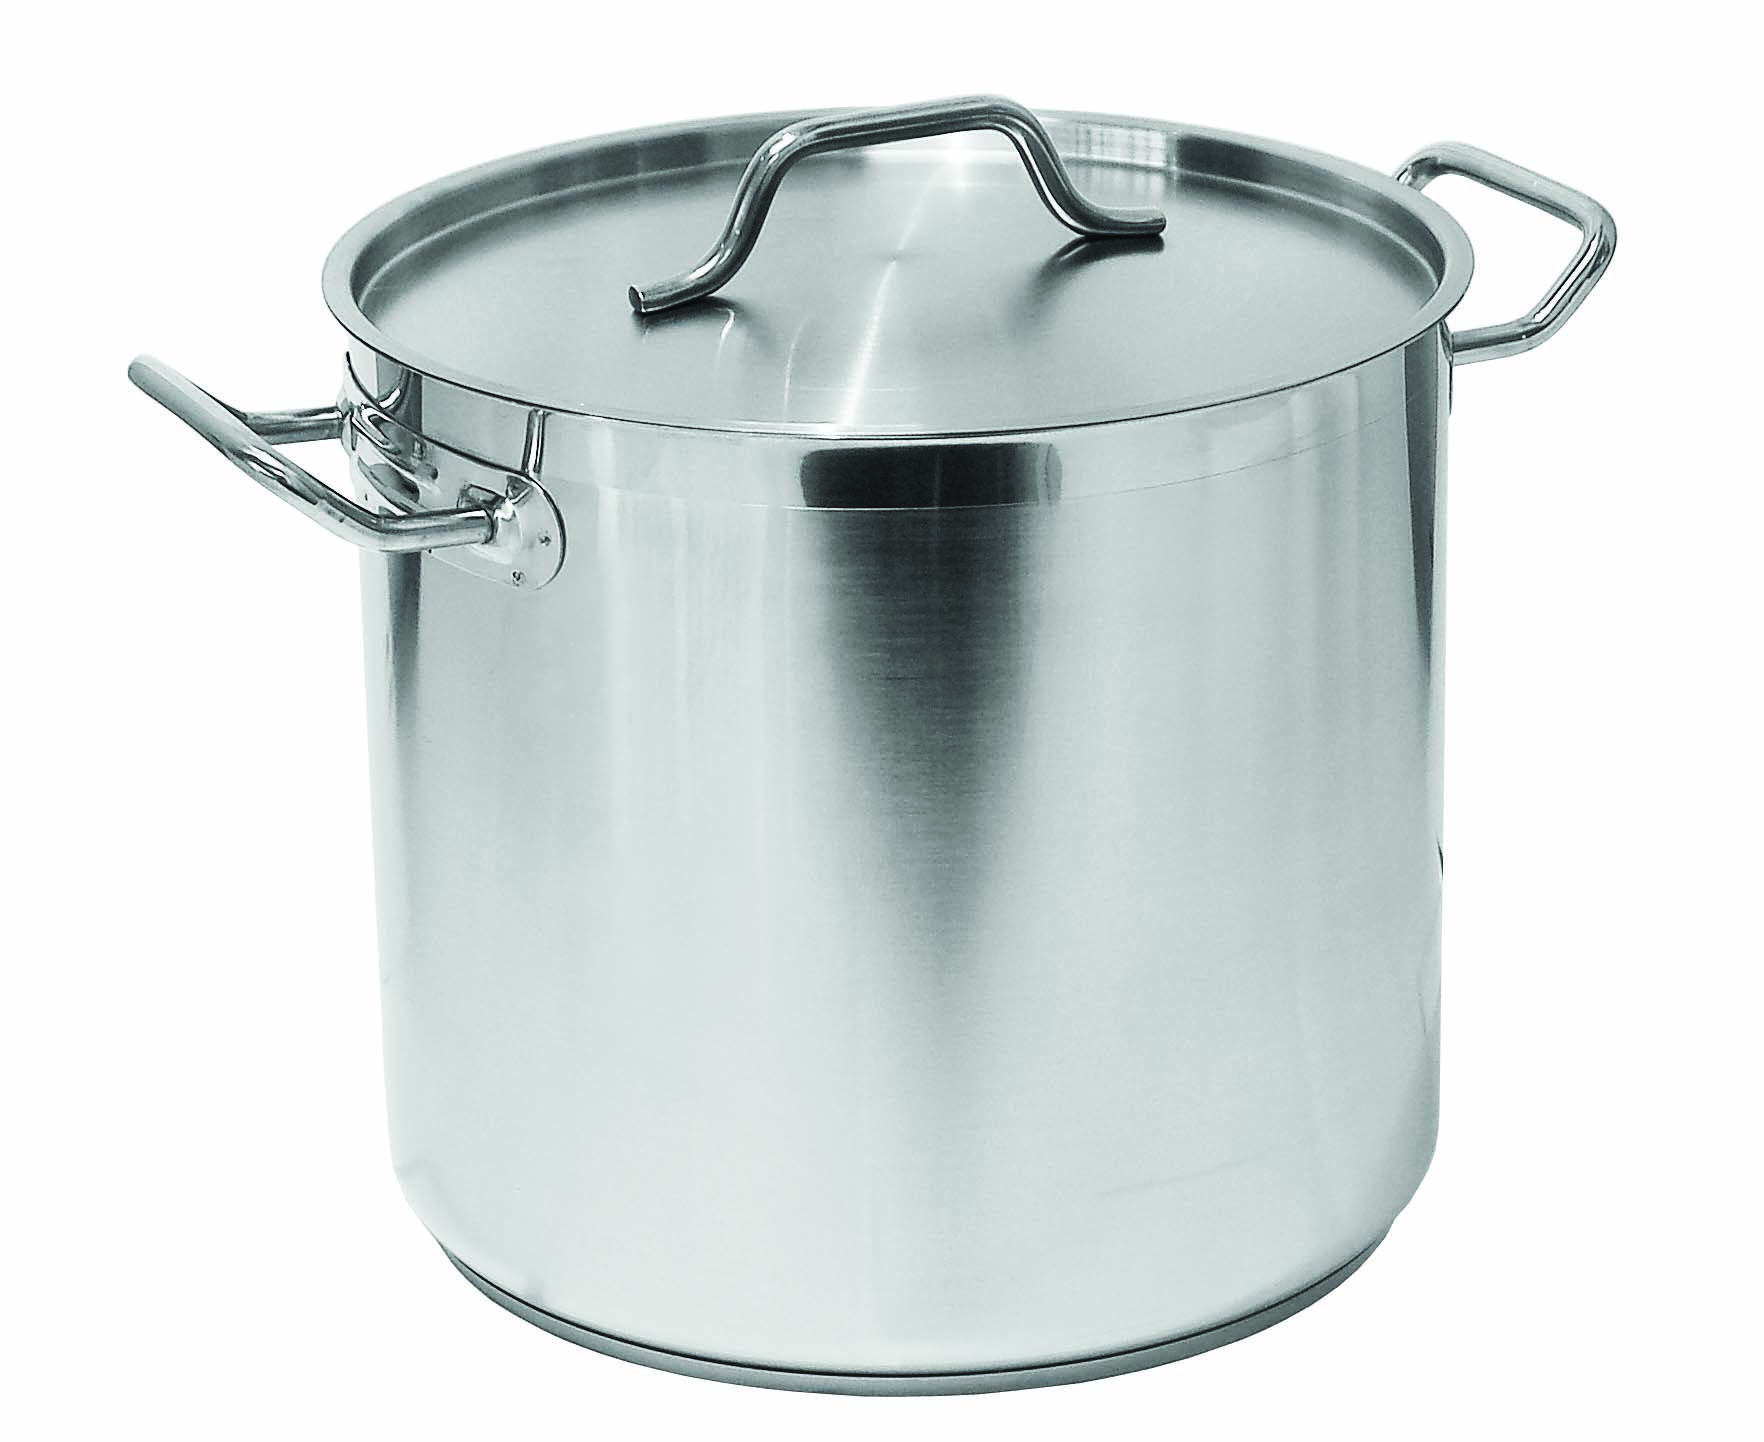 POT S/STEEL CASSEROLE(VALUE) - 10LT